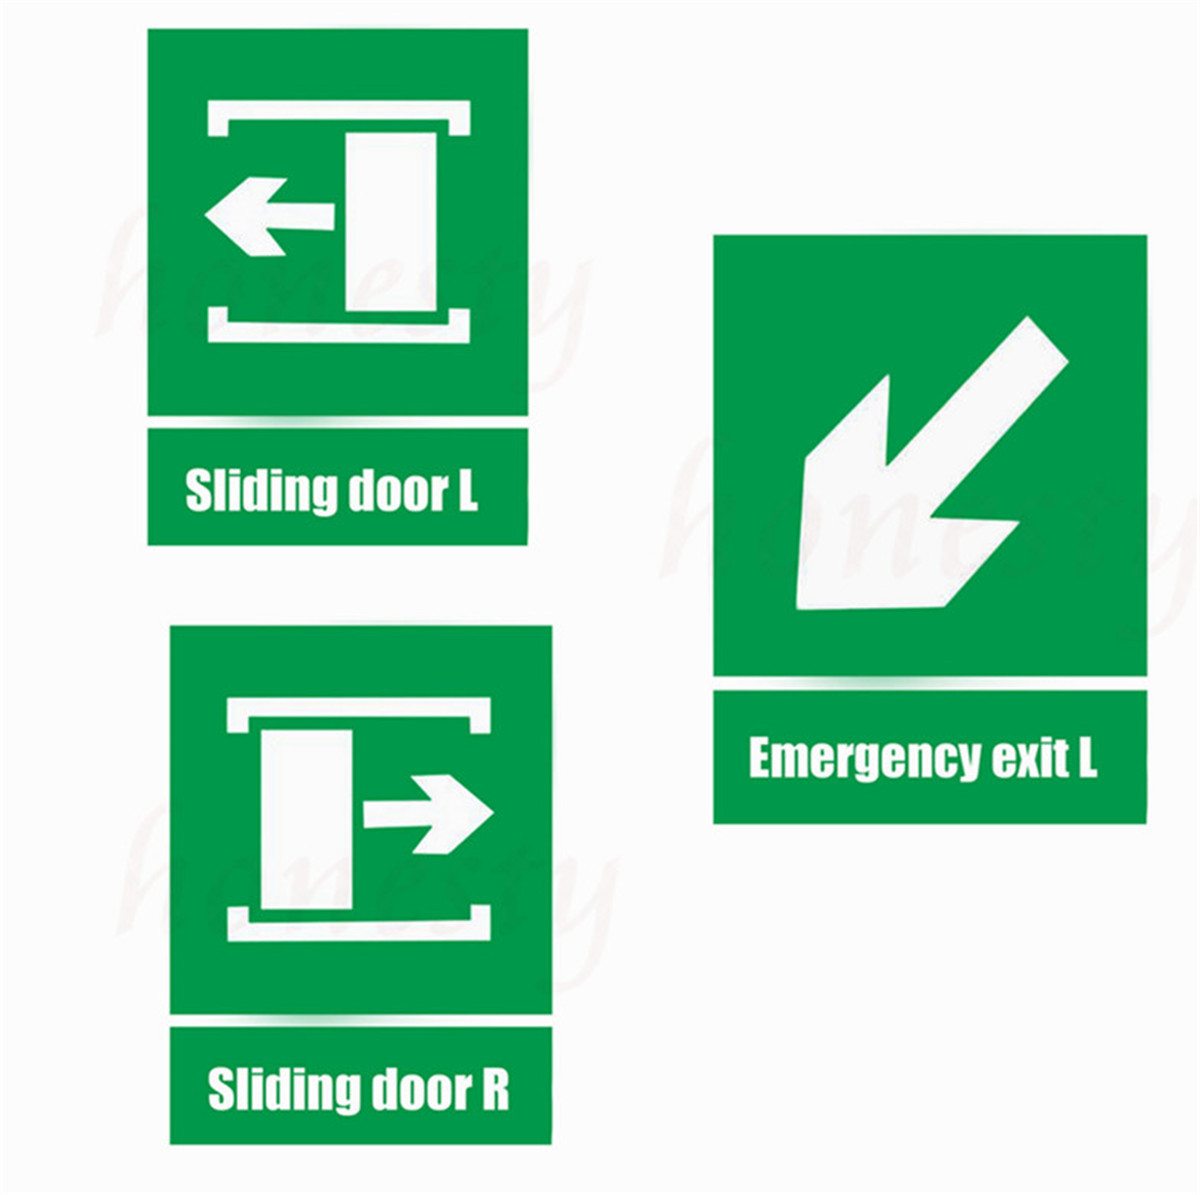 Sliding door green fire sign self adhesive stickers for walls warning safety sign sticker emergency